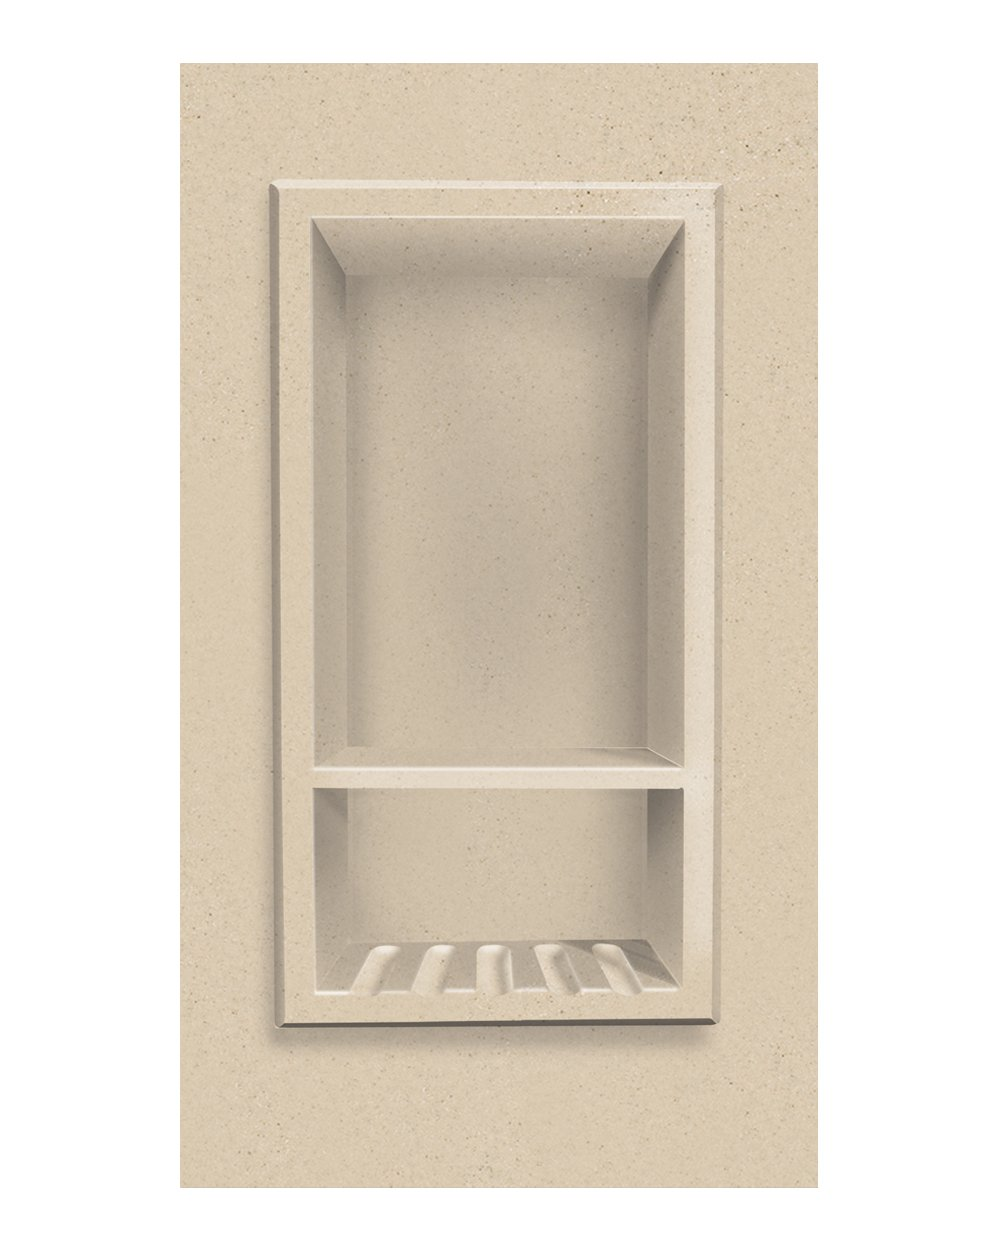 Transolid ACCESS0002-B1 Decor 7-1/2 x 15-Inch Recessed Shampoo Caddy, Matrix Khaki by Transolid